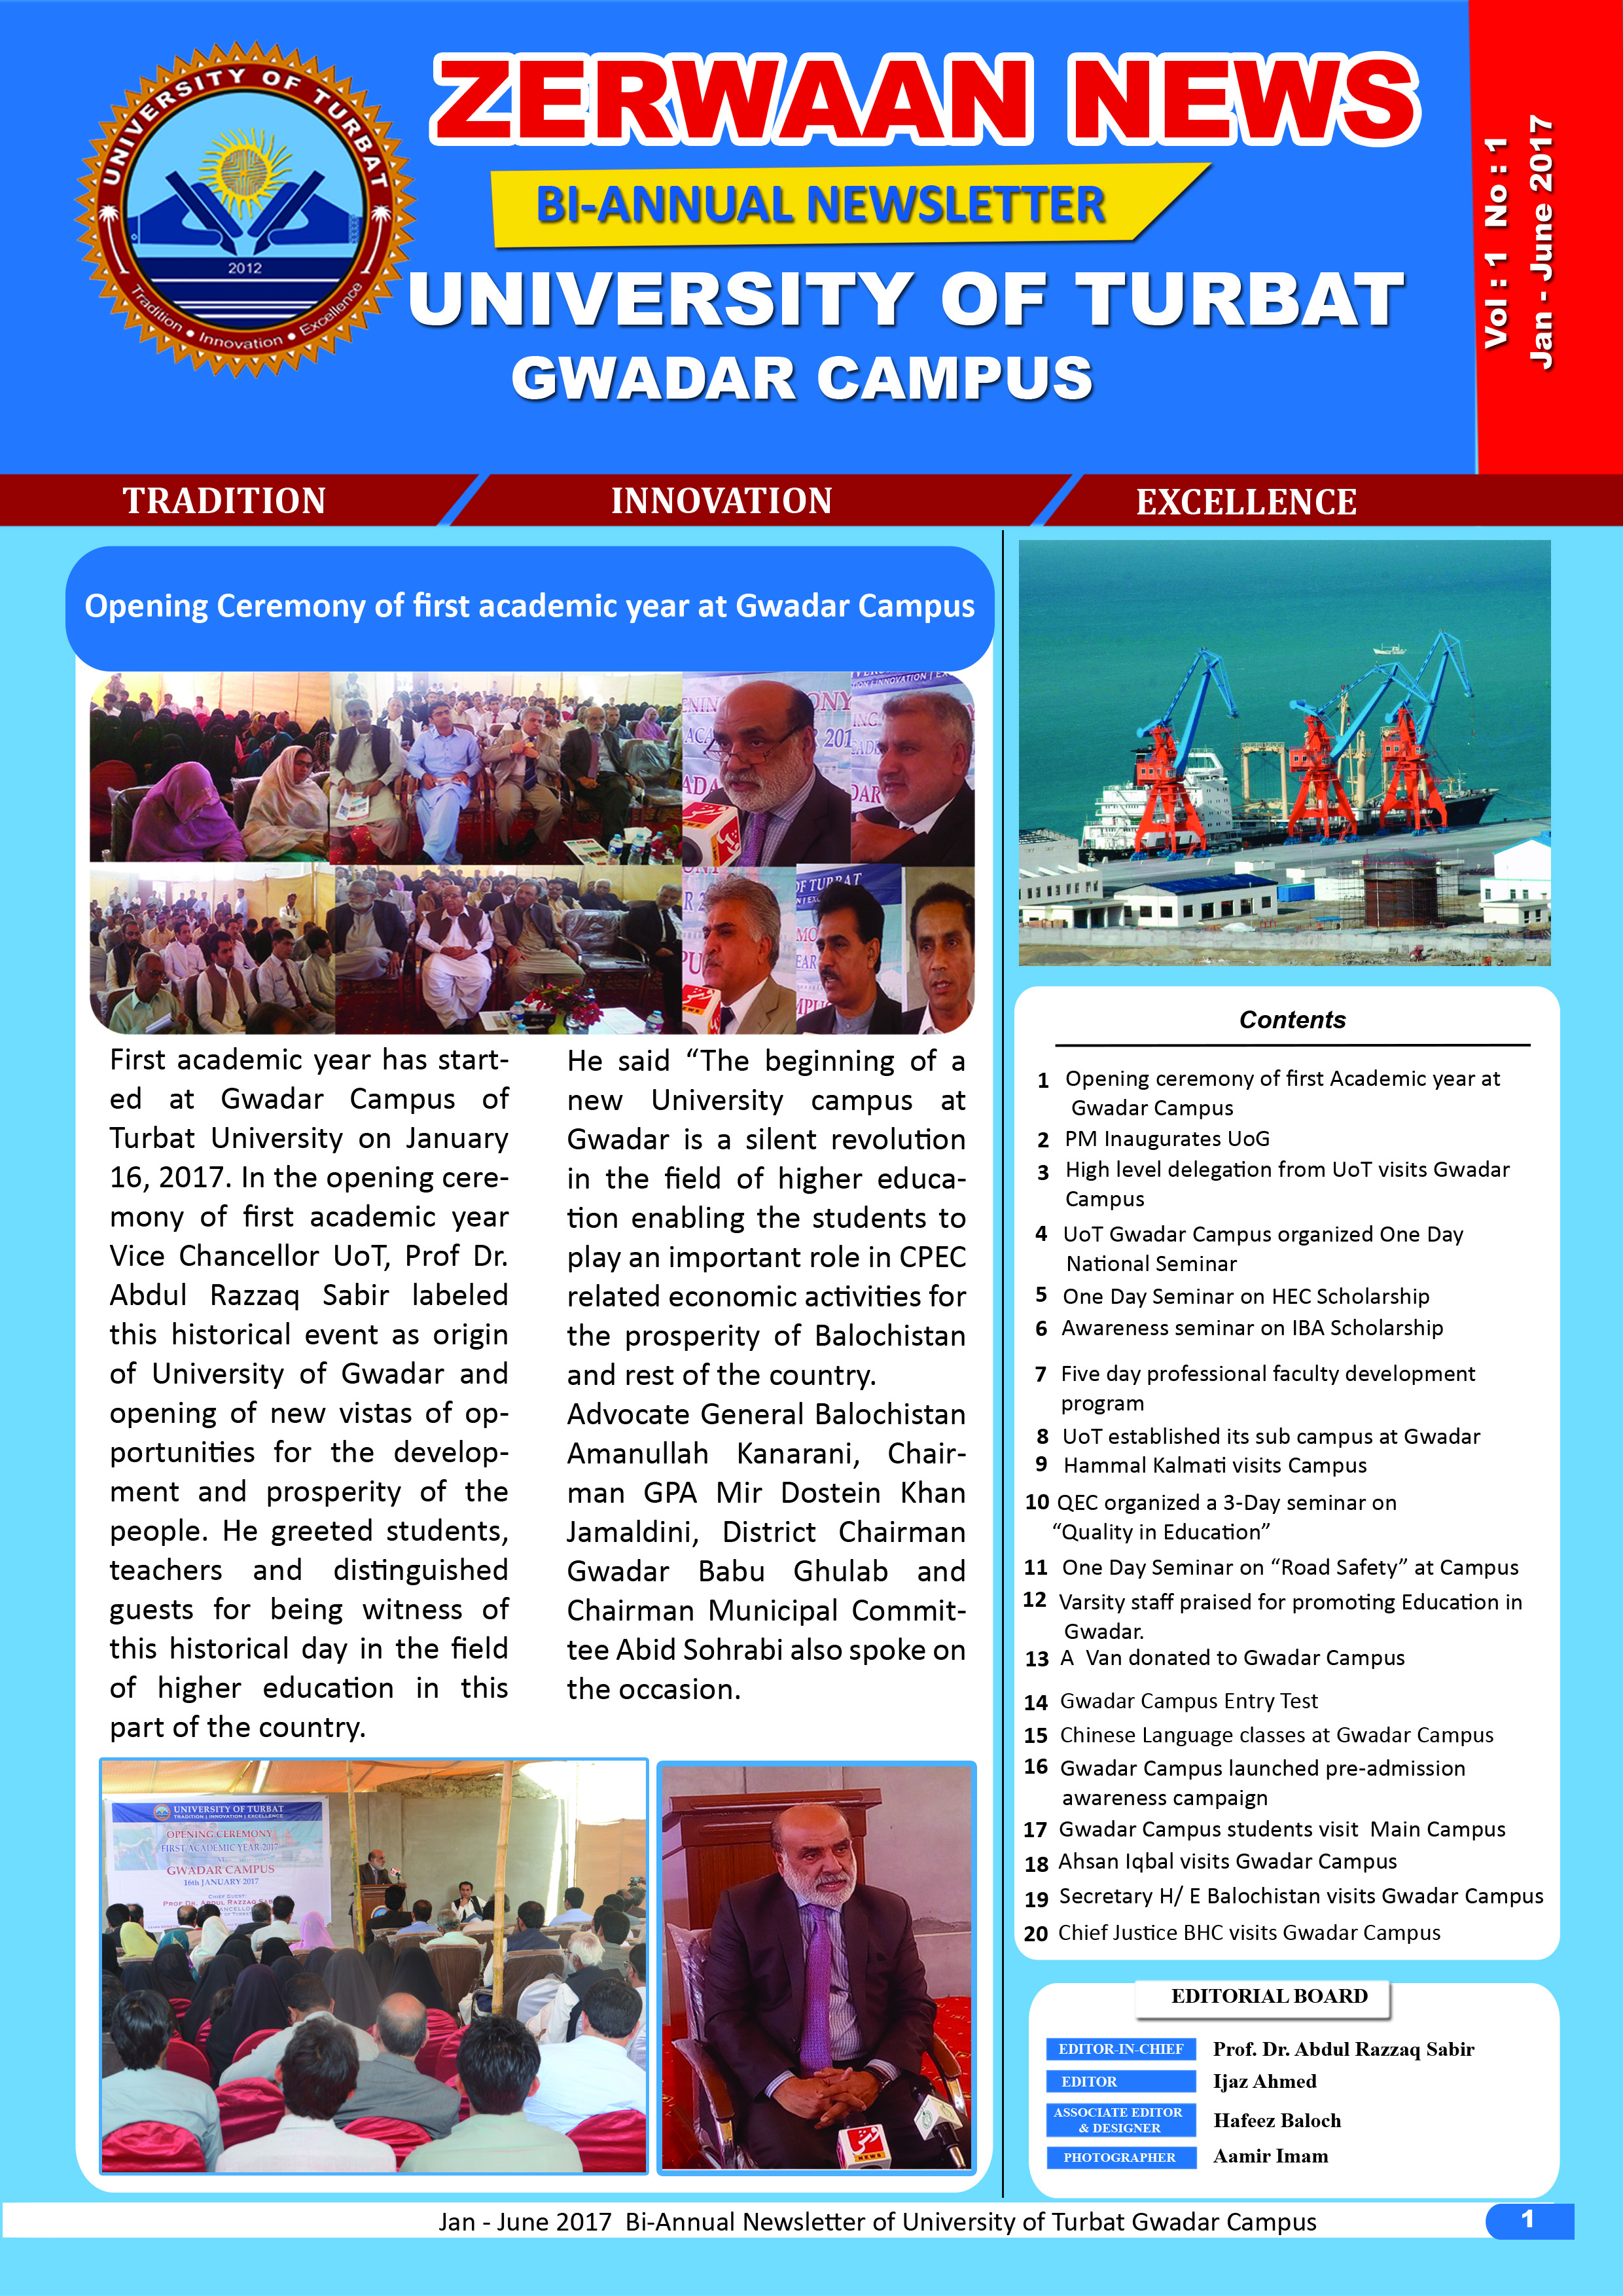 Zerwaan News January-June 2017 Edition